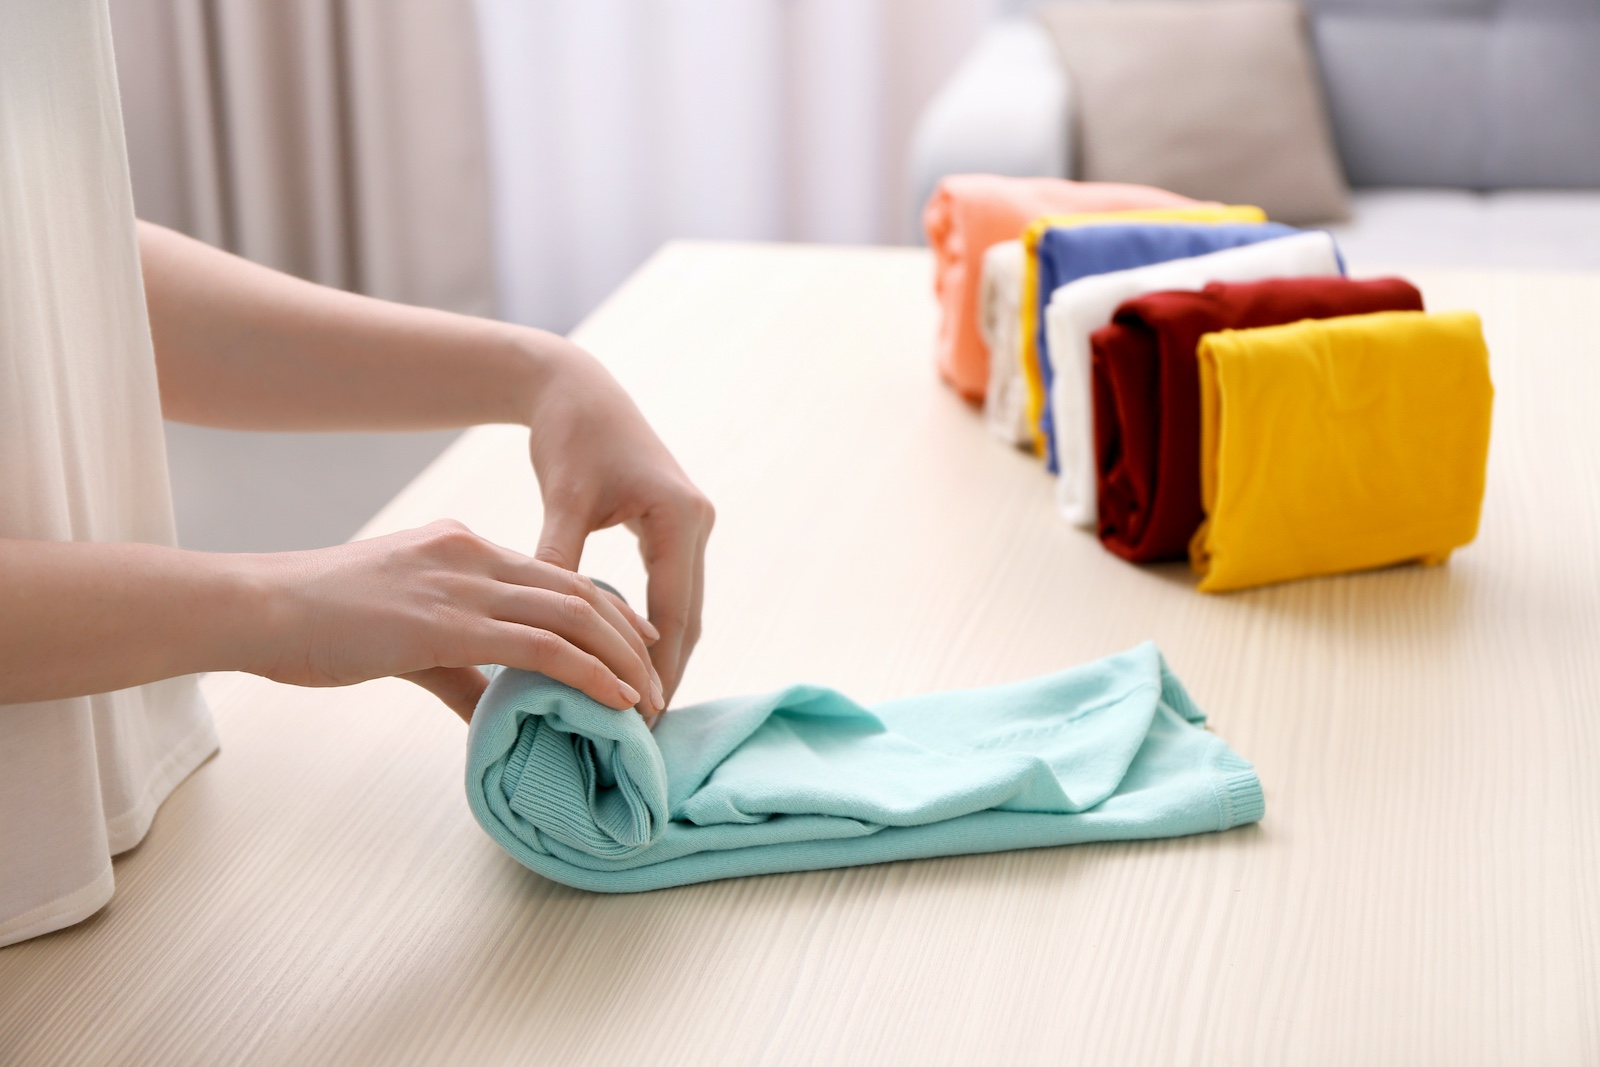 A woman's hands are folding clothes by rolling them